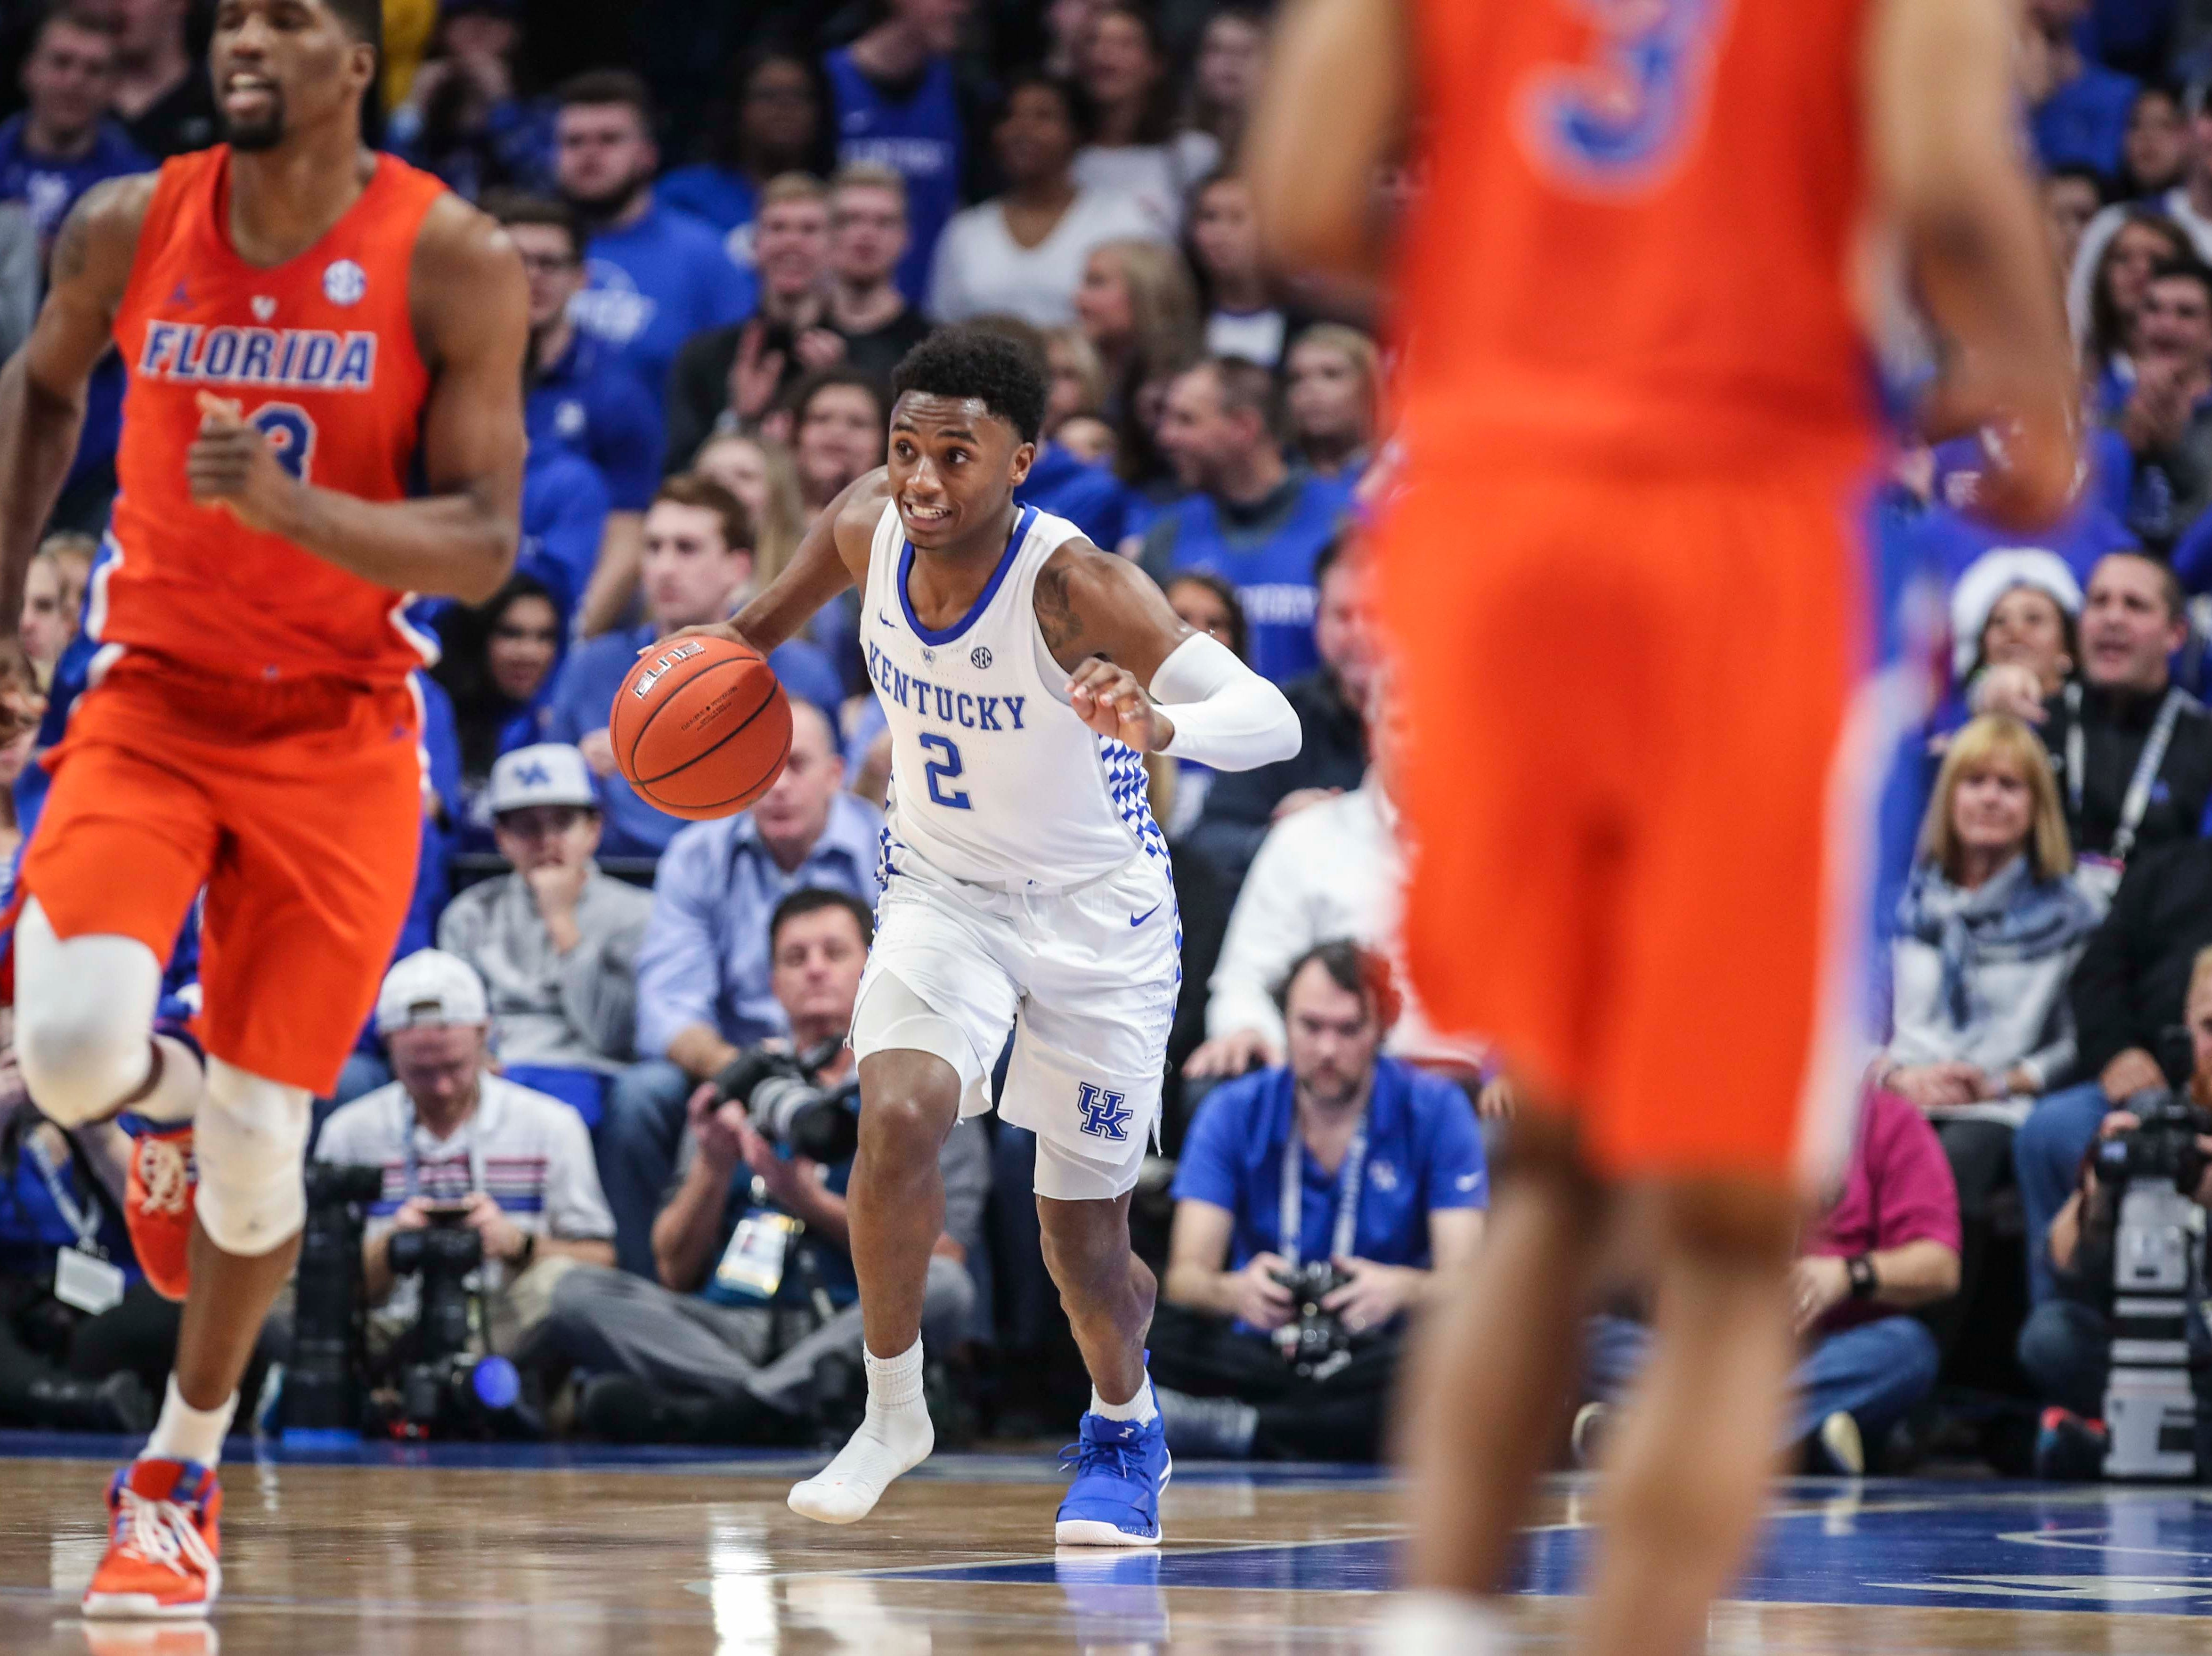 Kentucky's Ashton Hagans heads up the court without a shoe after losing it in the first half against Florida.  March 9, 2019